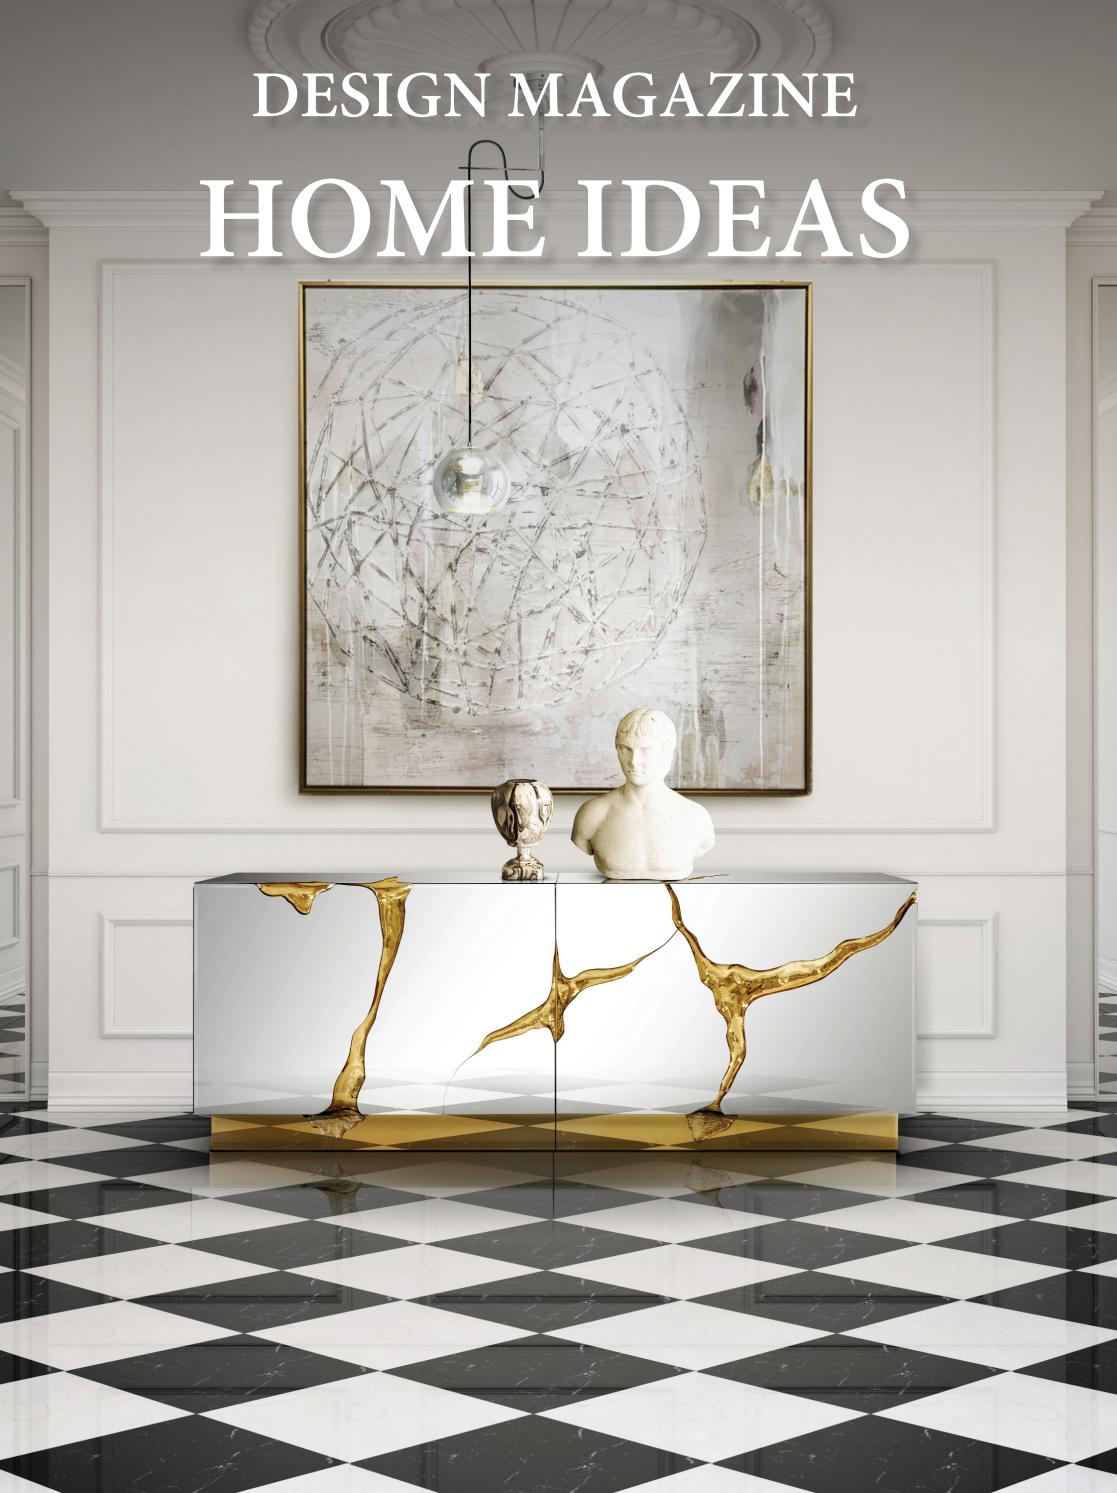 Design magazine home ideas by covet house issuu for Deco design magazine